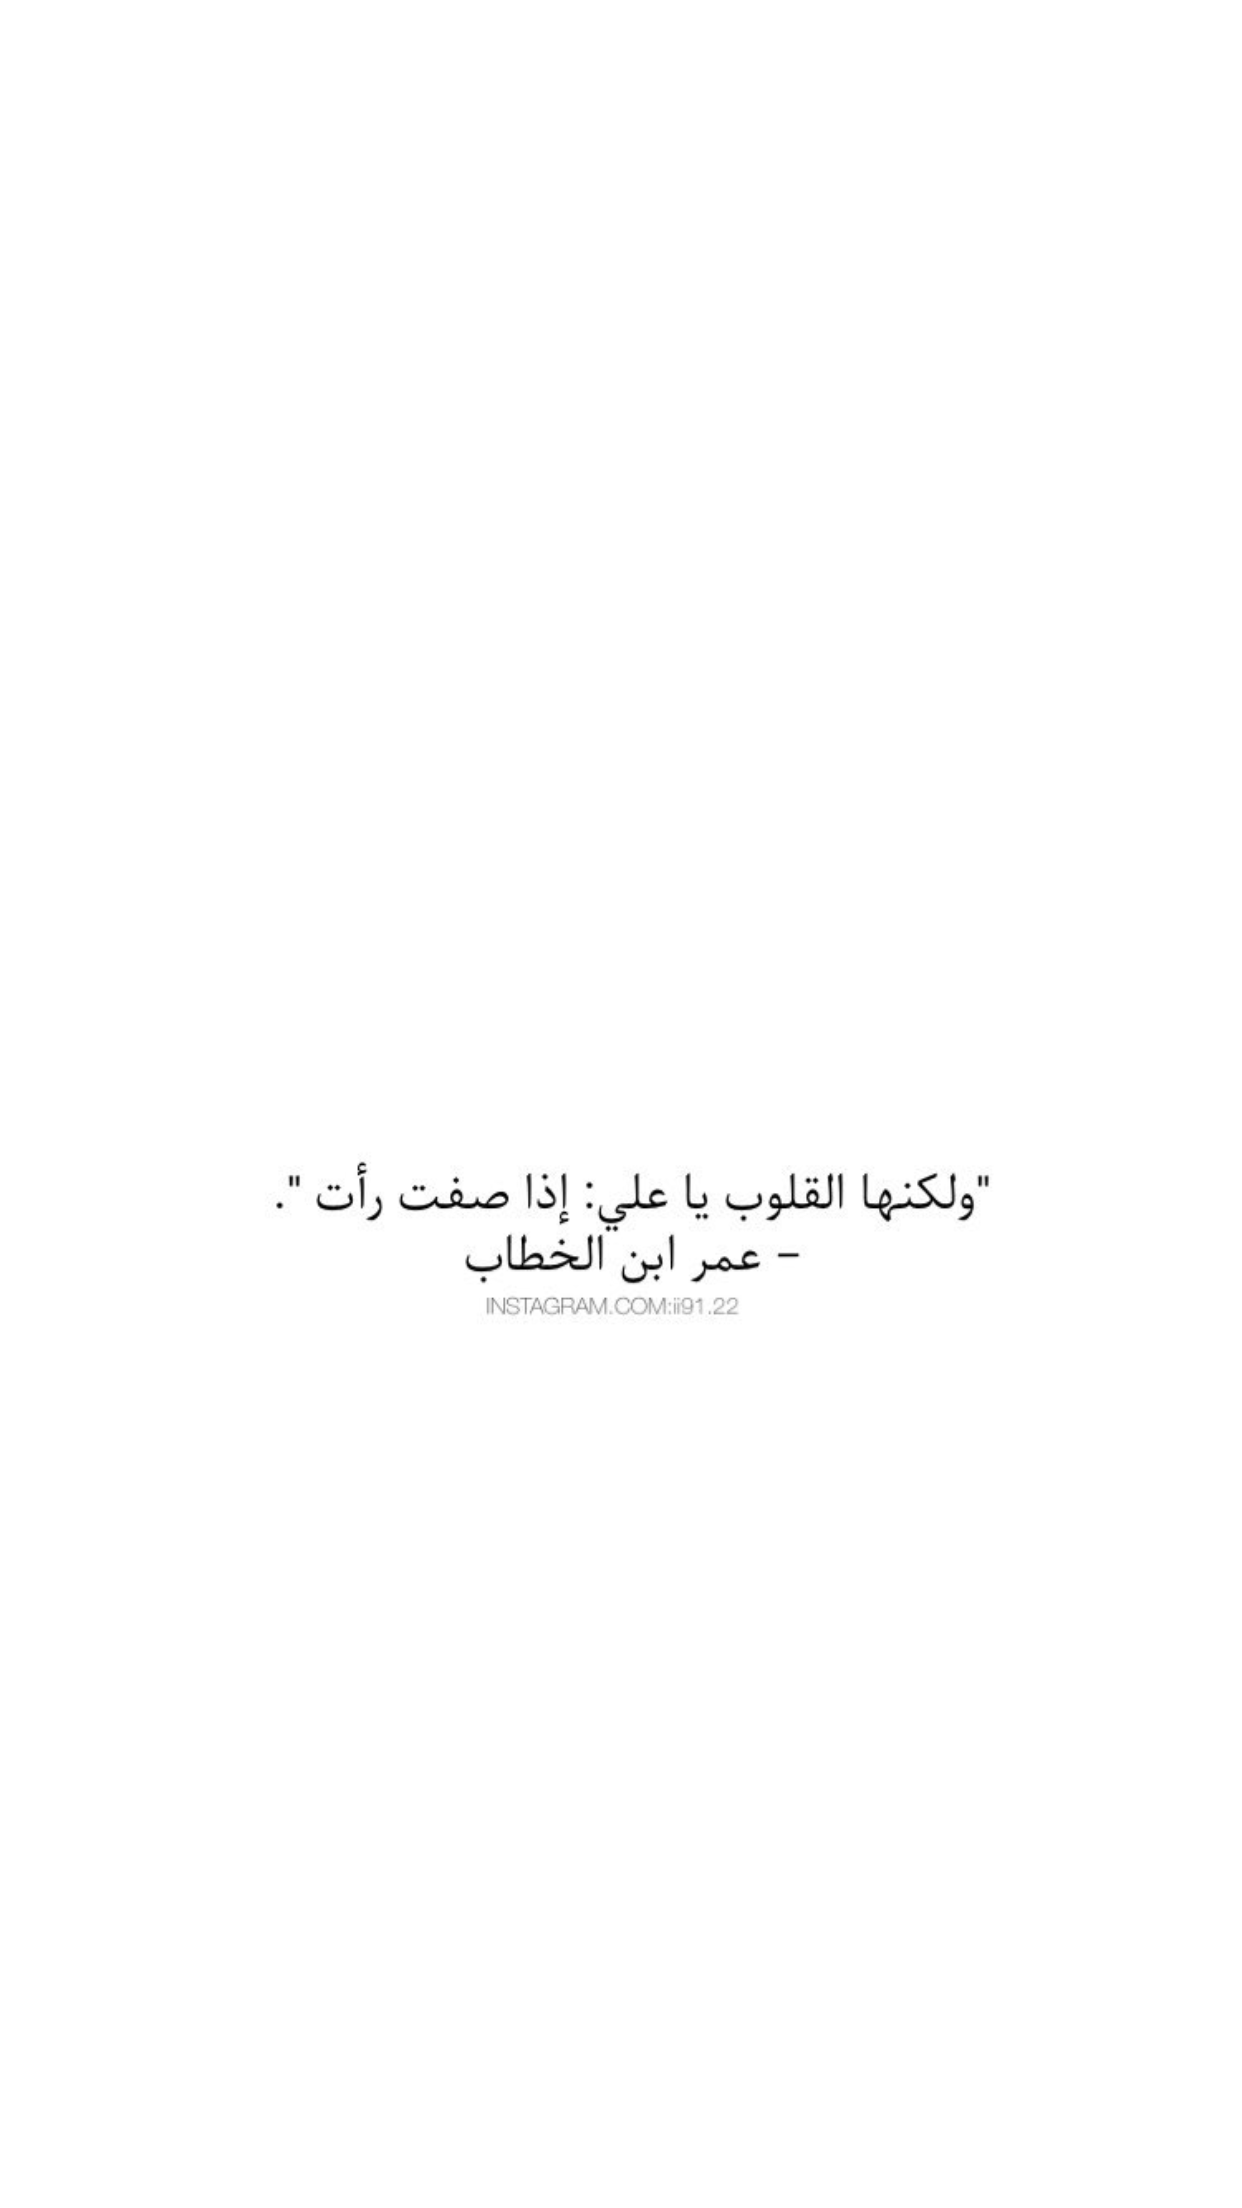 Pin By محبةالخير On منوعات Cute Inspirational Quotes Quotations Inspirational Quotes